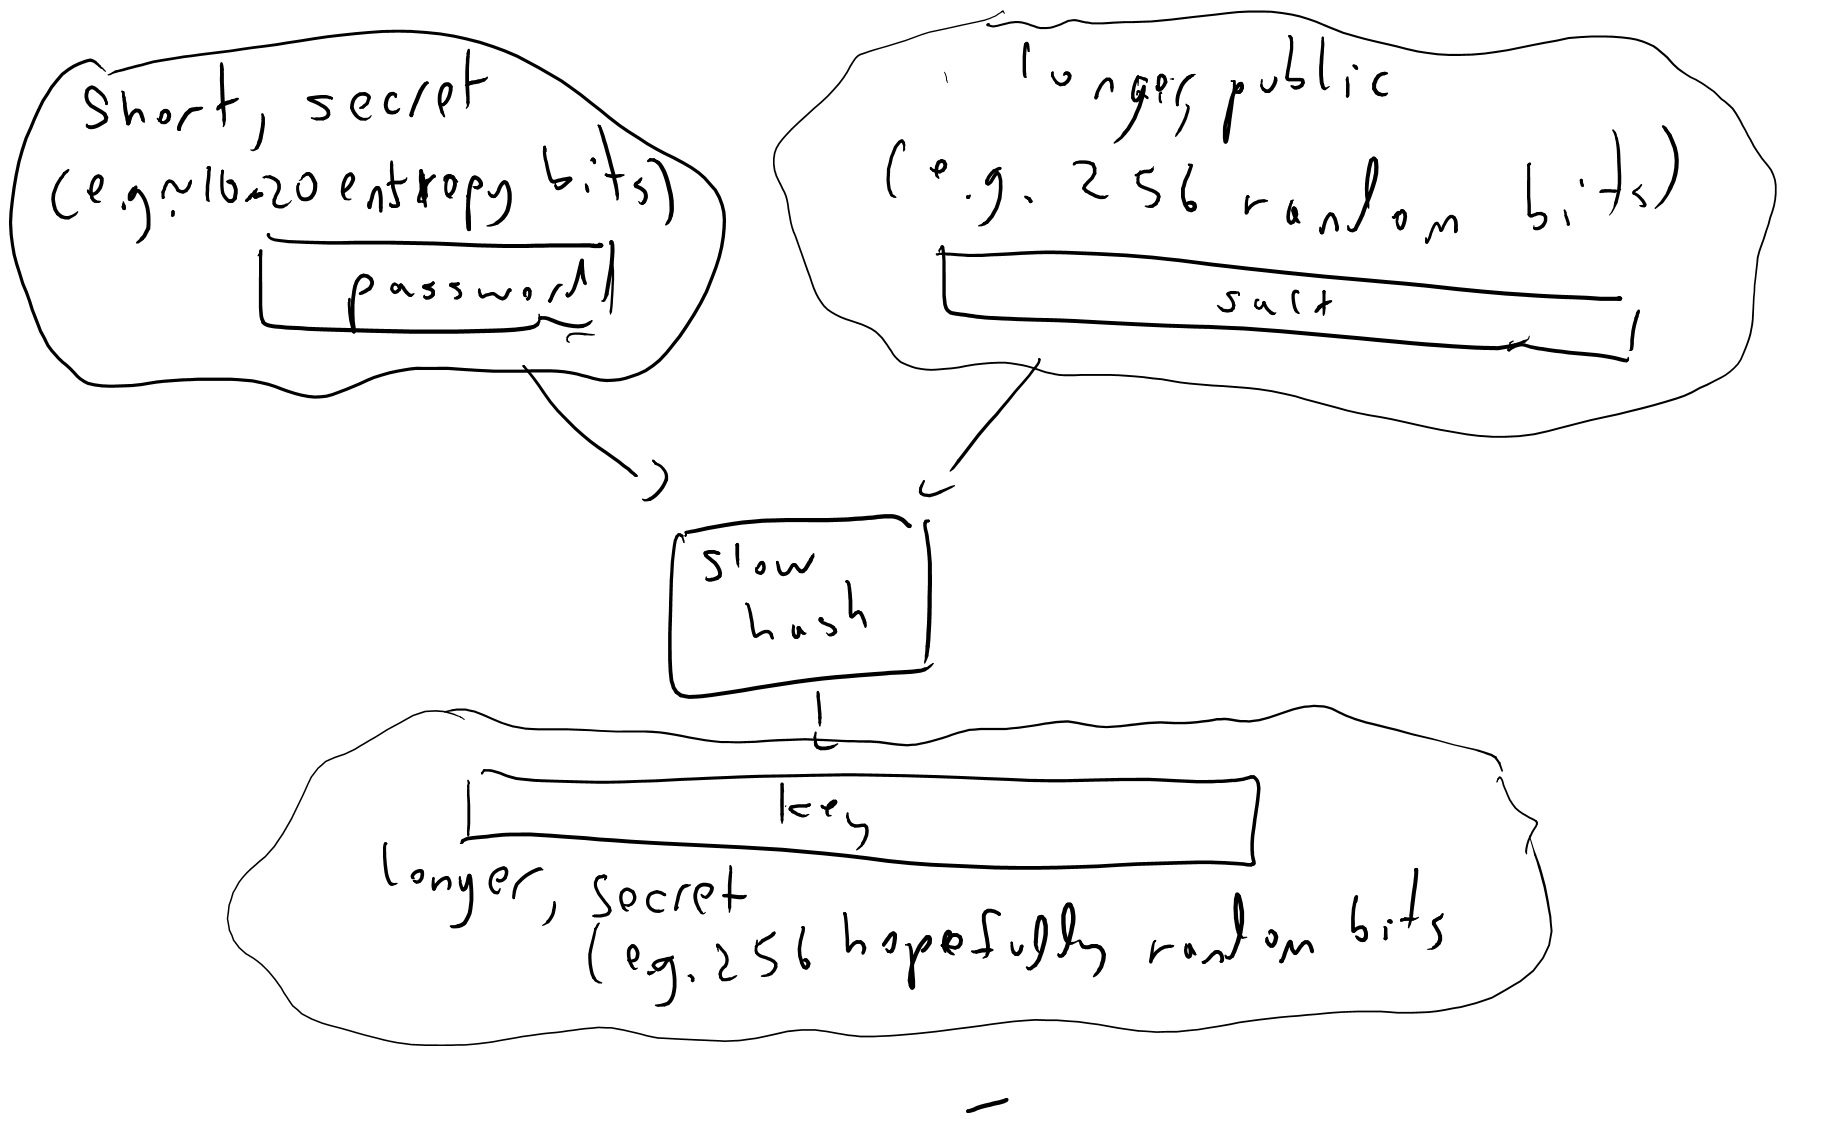 """8.1: To obtain a key from a password we will typically use a """"slow"""" hash function to map the password and a unique-to-user public """"salt"""" value to a cryptographic key. Even with such a procedure, the resulting key cannot be consider as secure and unpredictable as a key that was chosen truly at random, especially if we are in a setting where an adversary can launch an offline attack to guess all possibilities."""